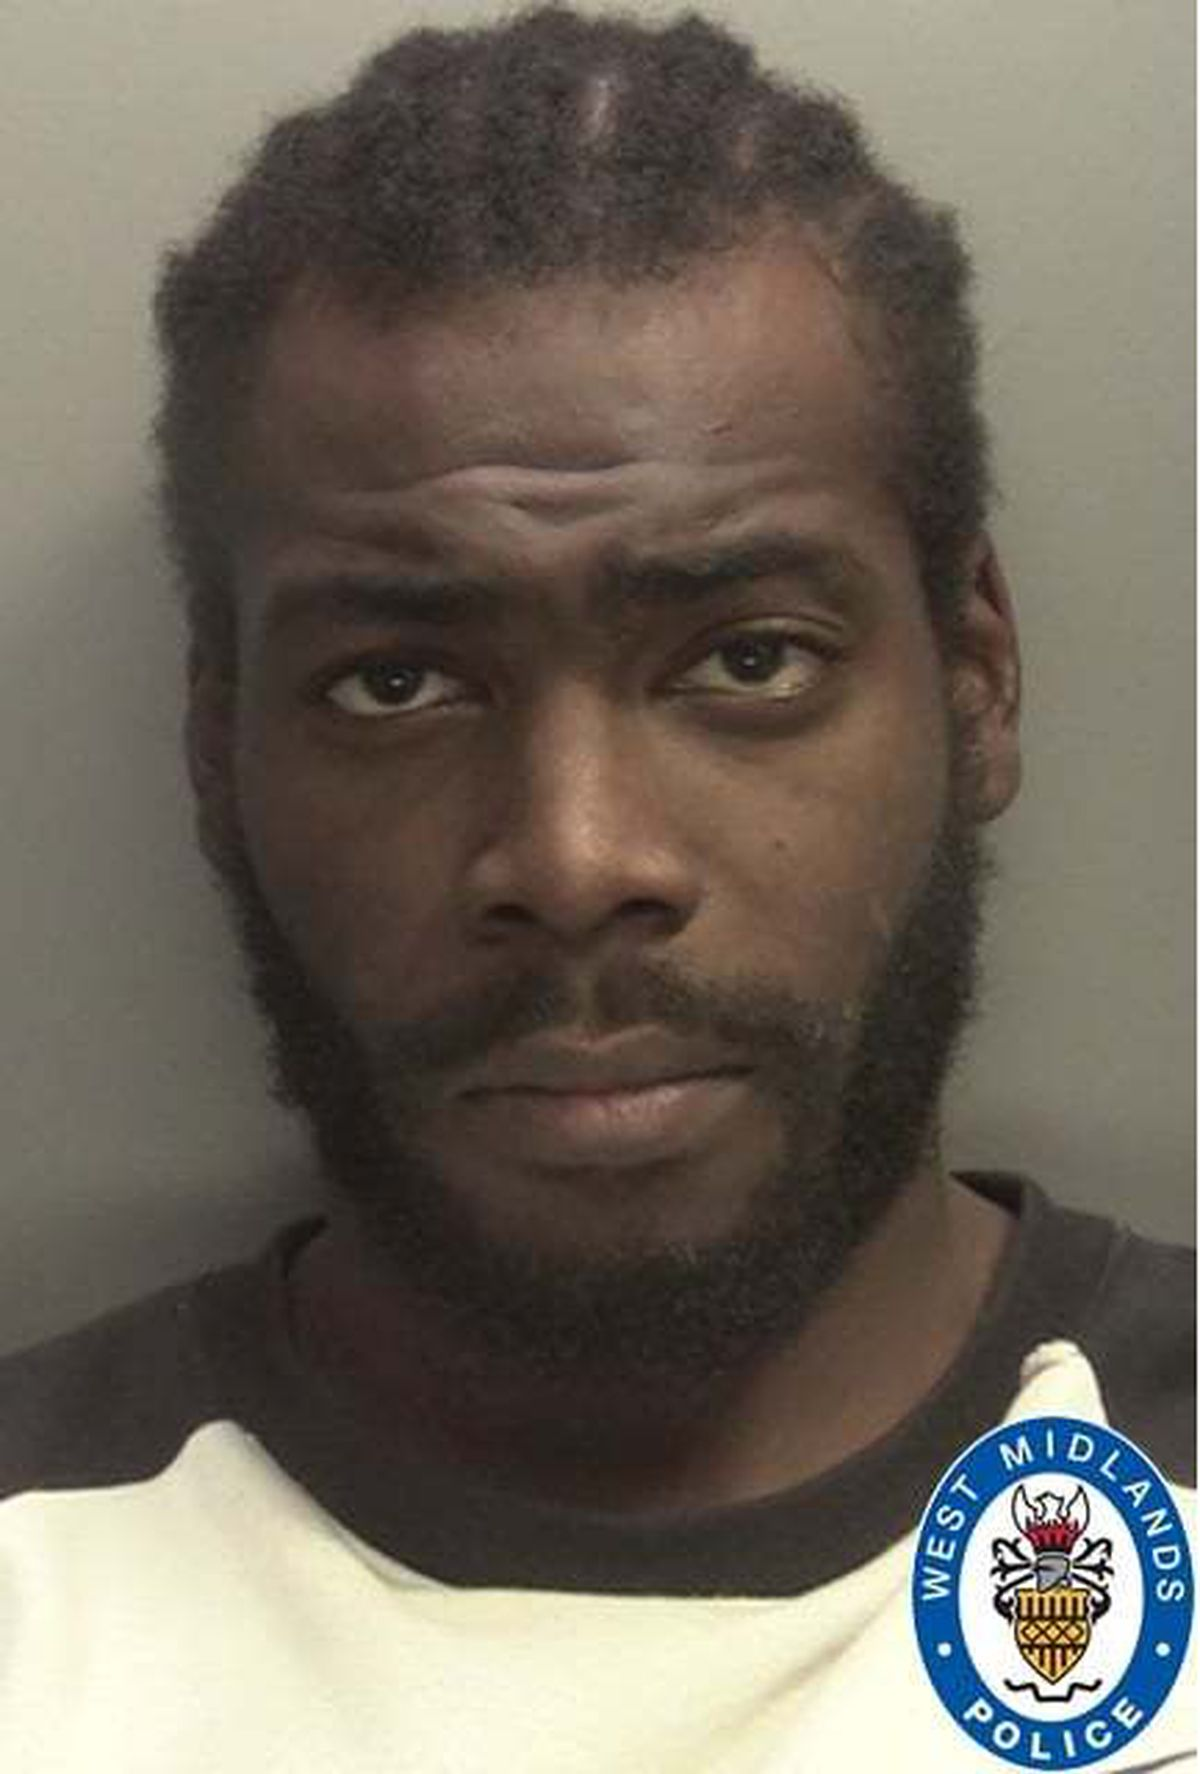 Brandon Blake, 24, is wanted by police